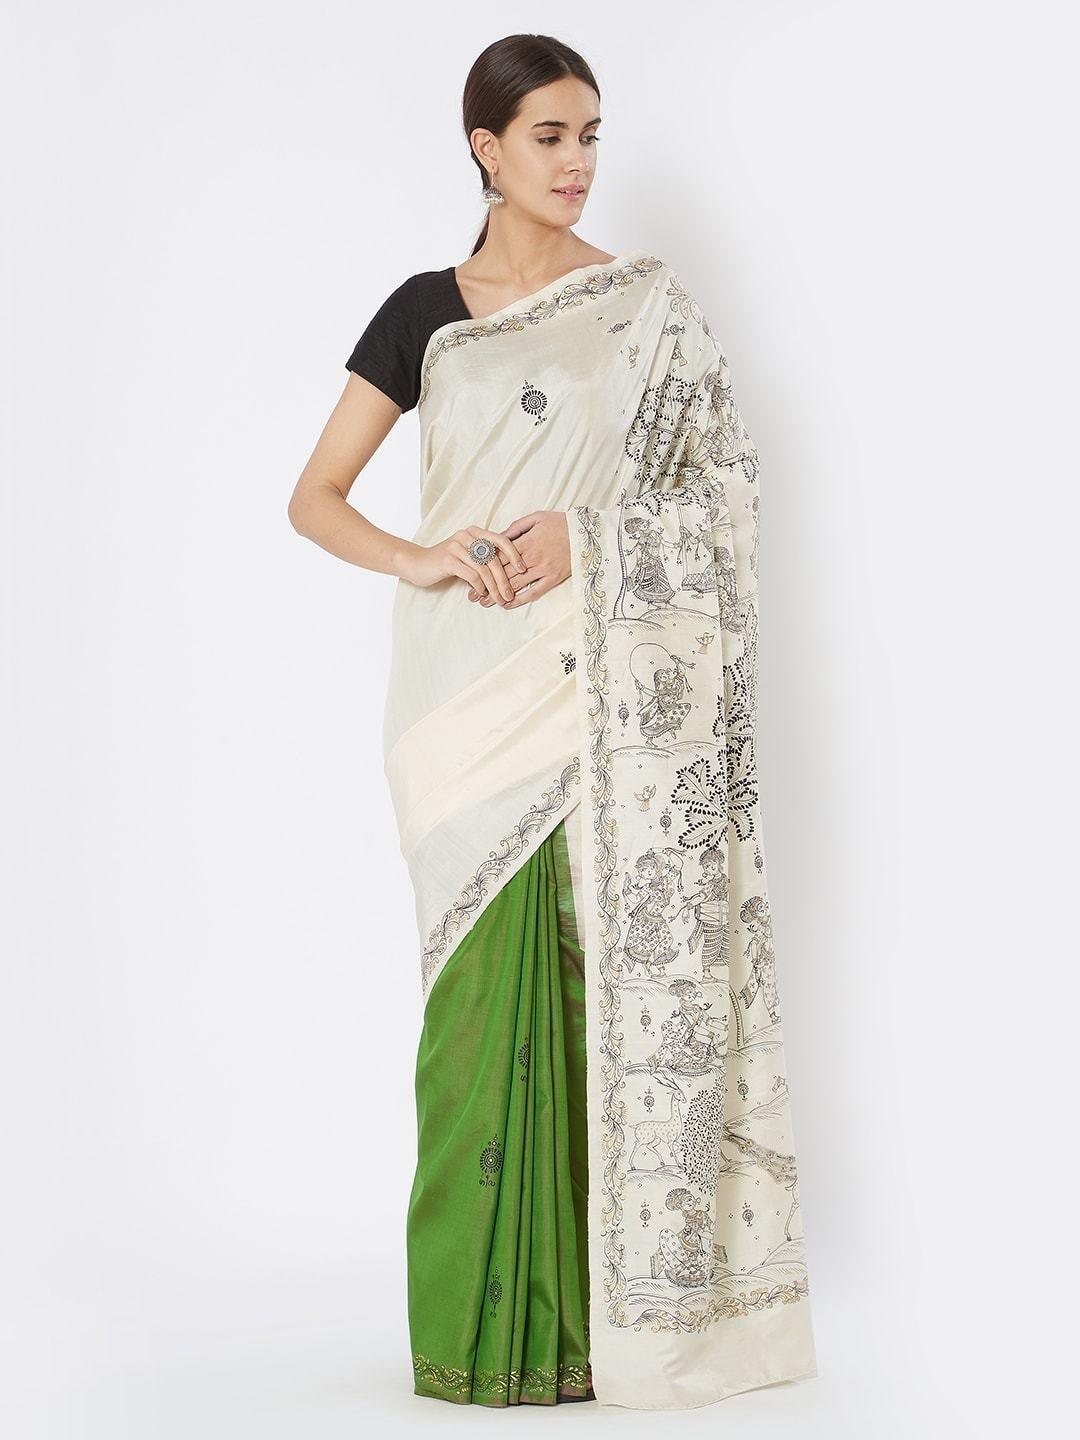 CraftsCollection.in - GreenWhite Silk Saree with Pattachitra motifs